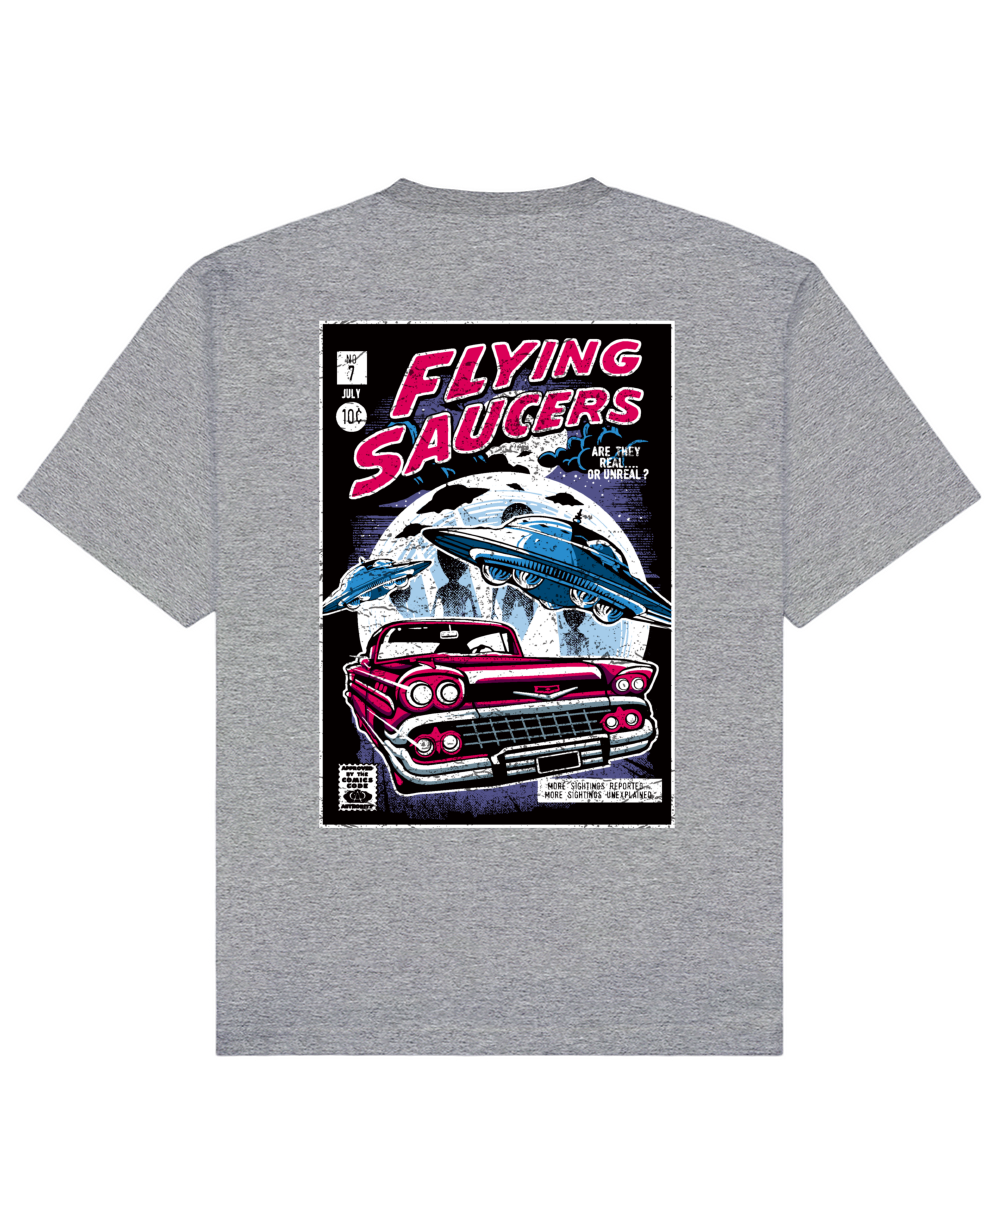 Flying Saucers Print T-Shirt in Heather Gray - T-Shirts - THEYLIVE - BRANMA